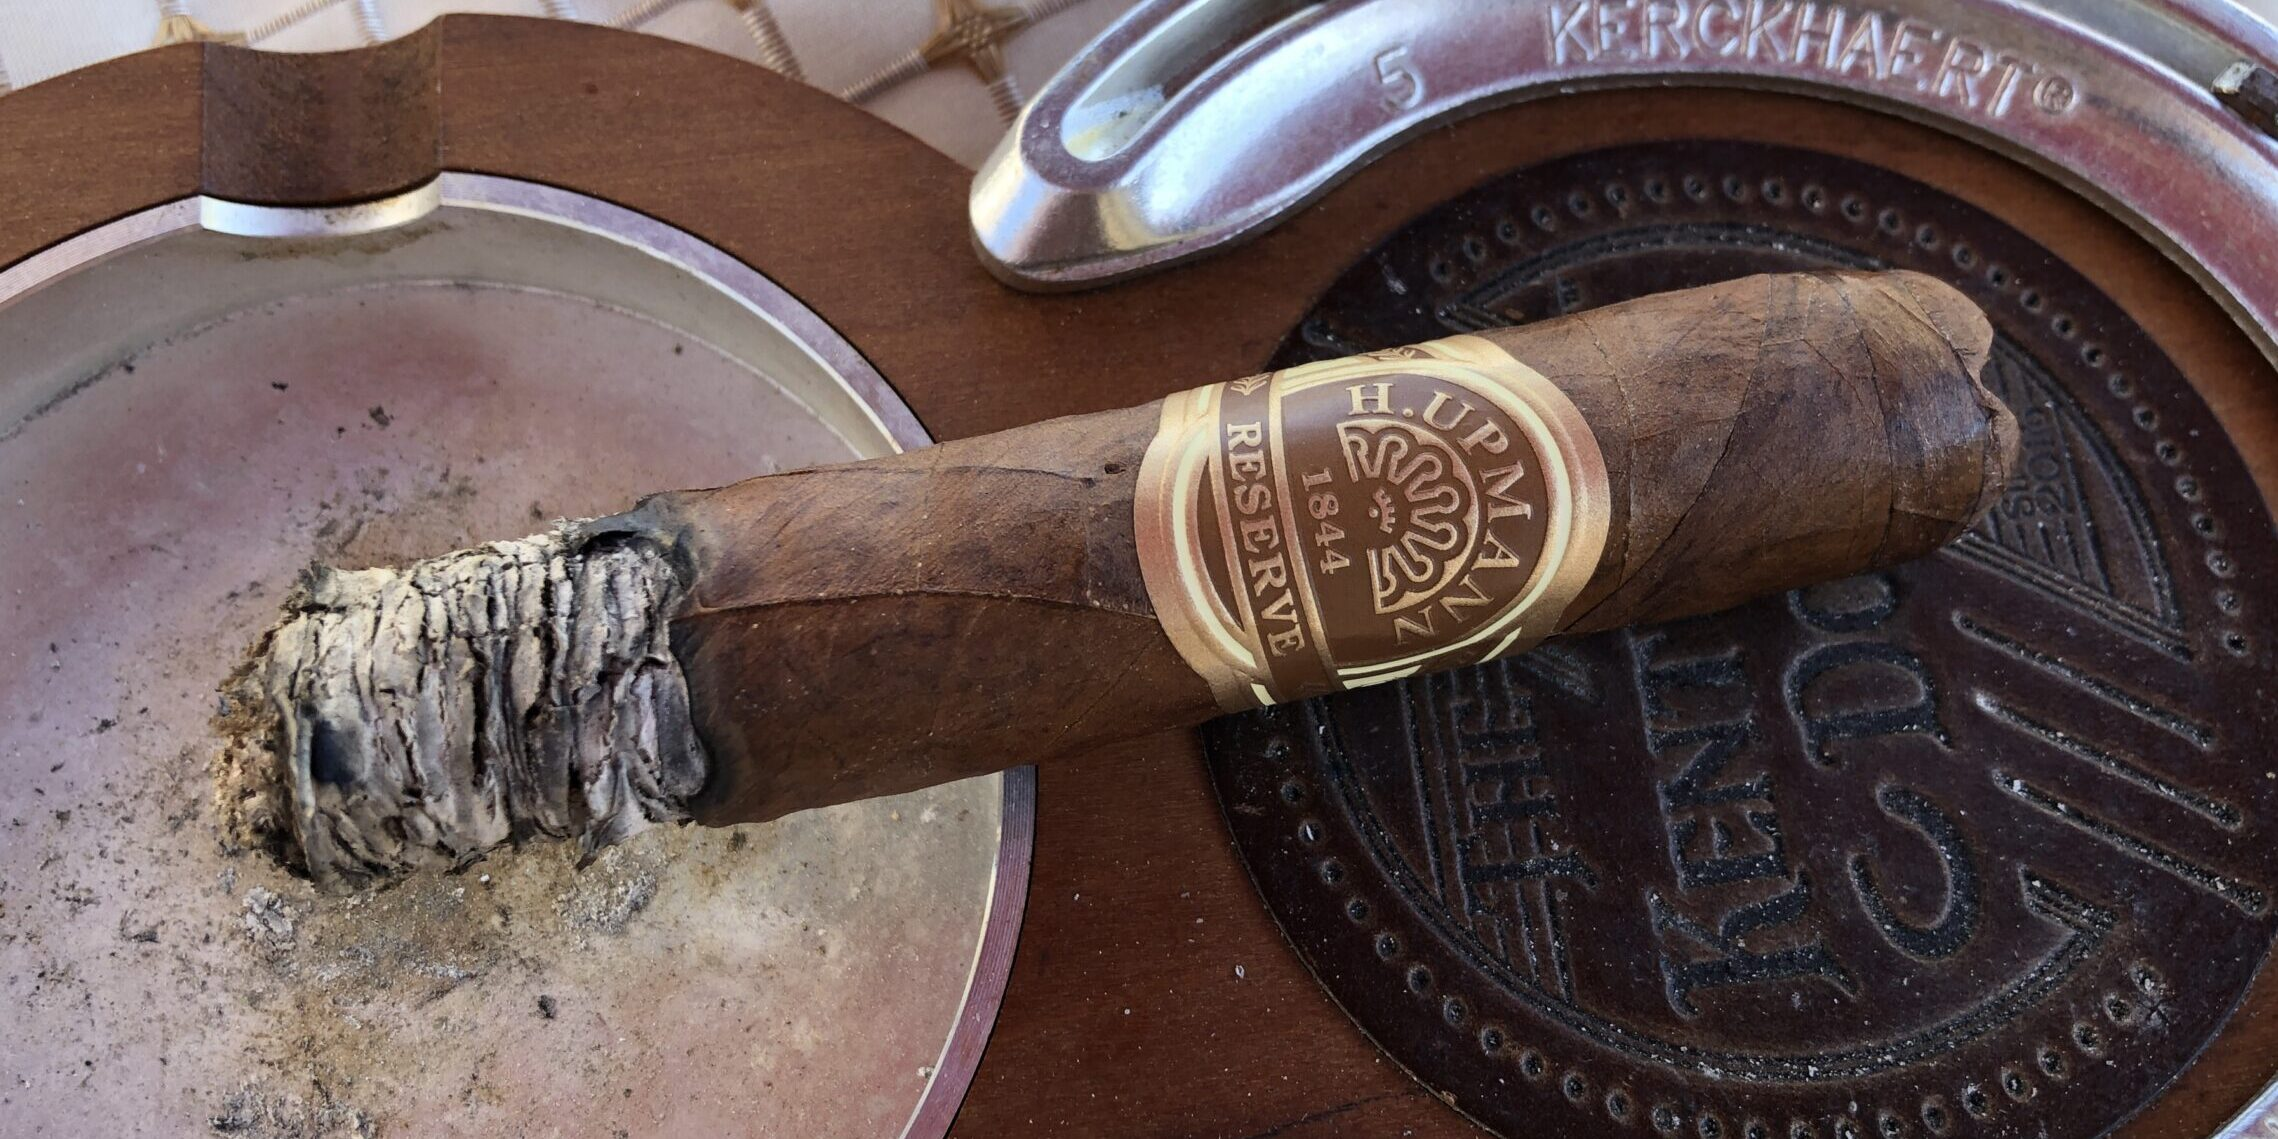 You are currently viewing H. Upmann 1844 Reserve Titan Gordo Cigar Review